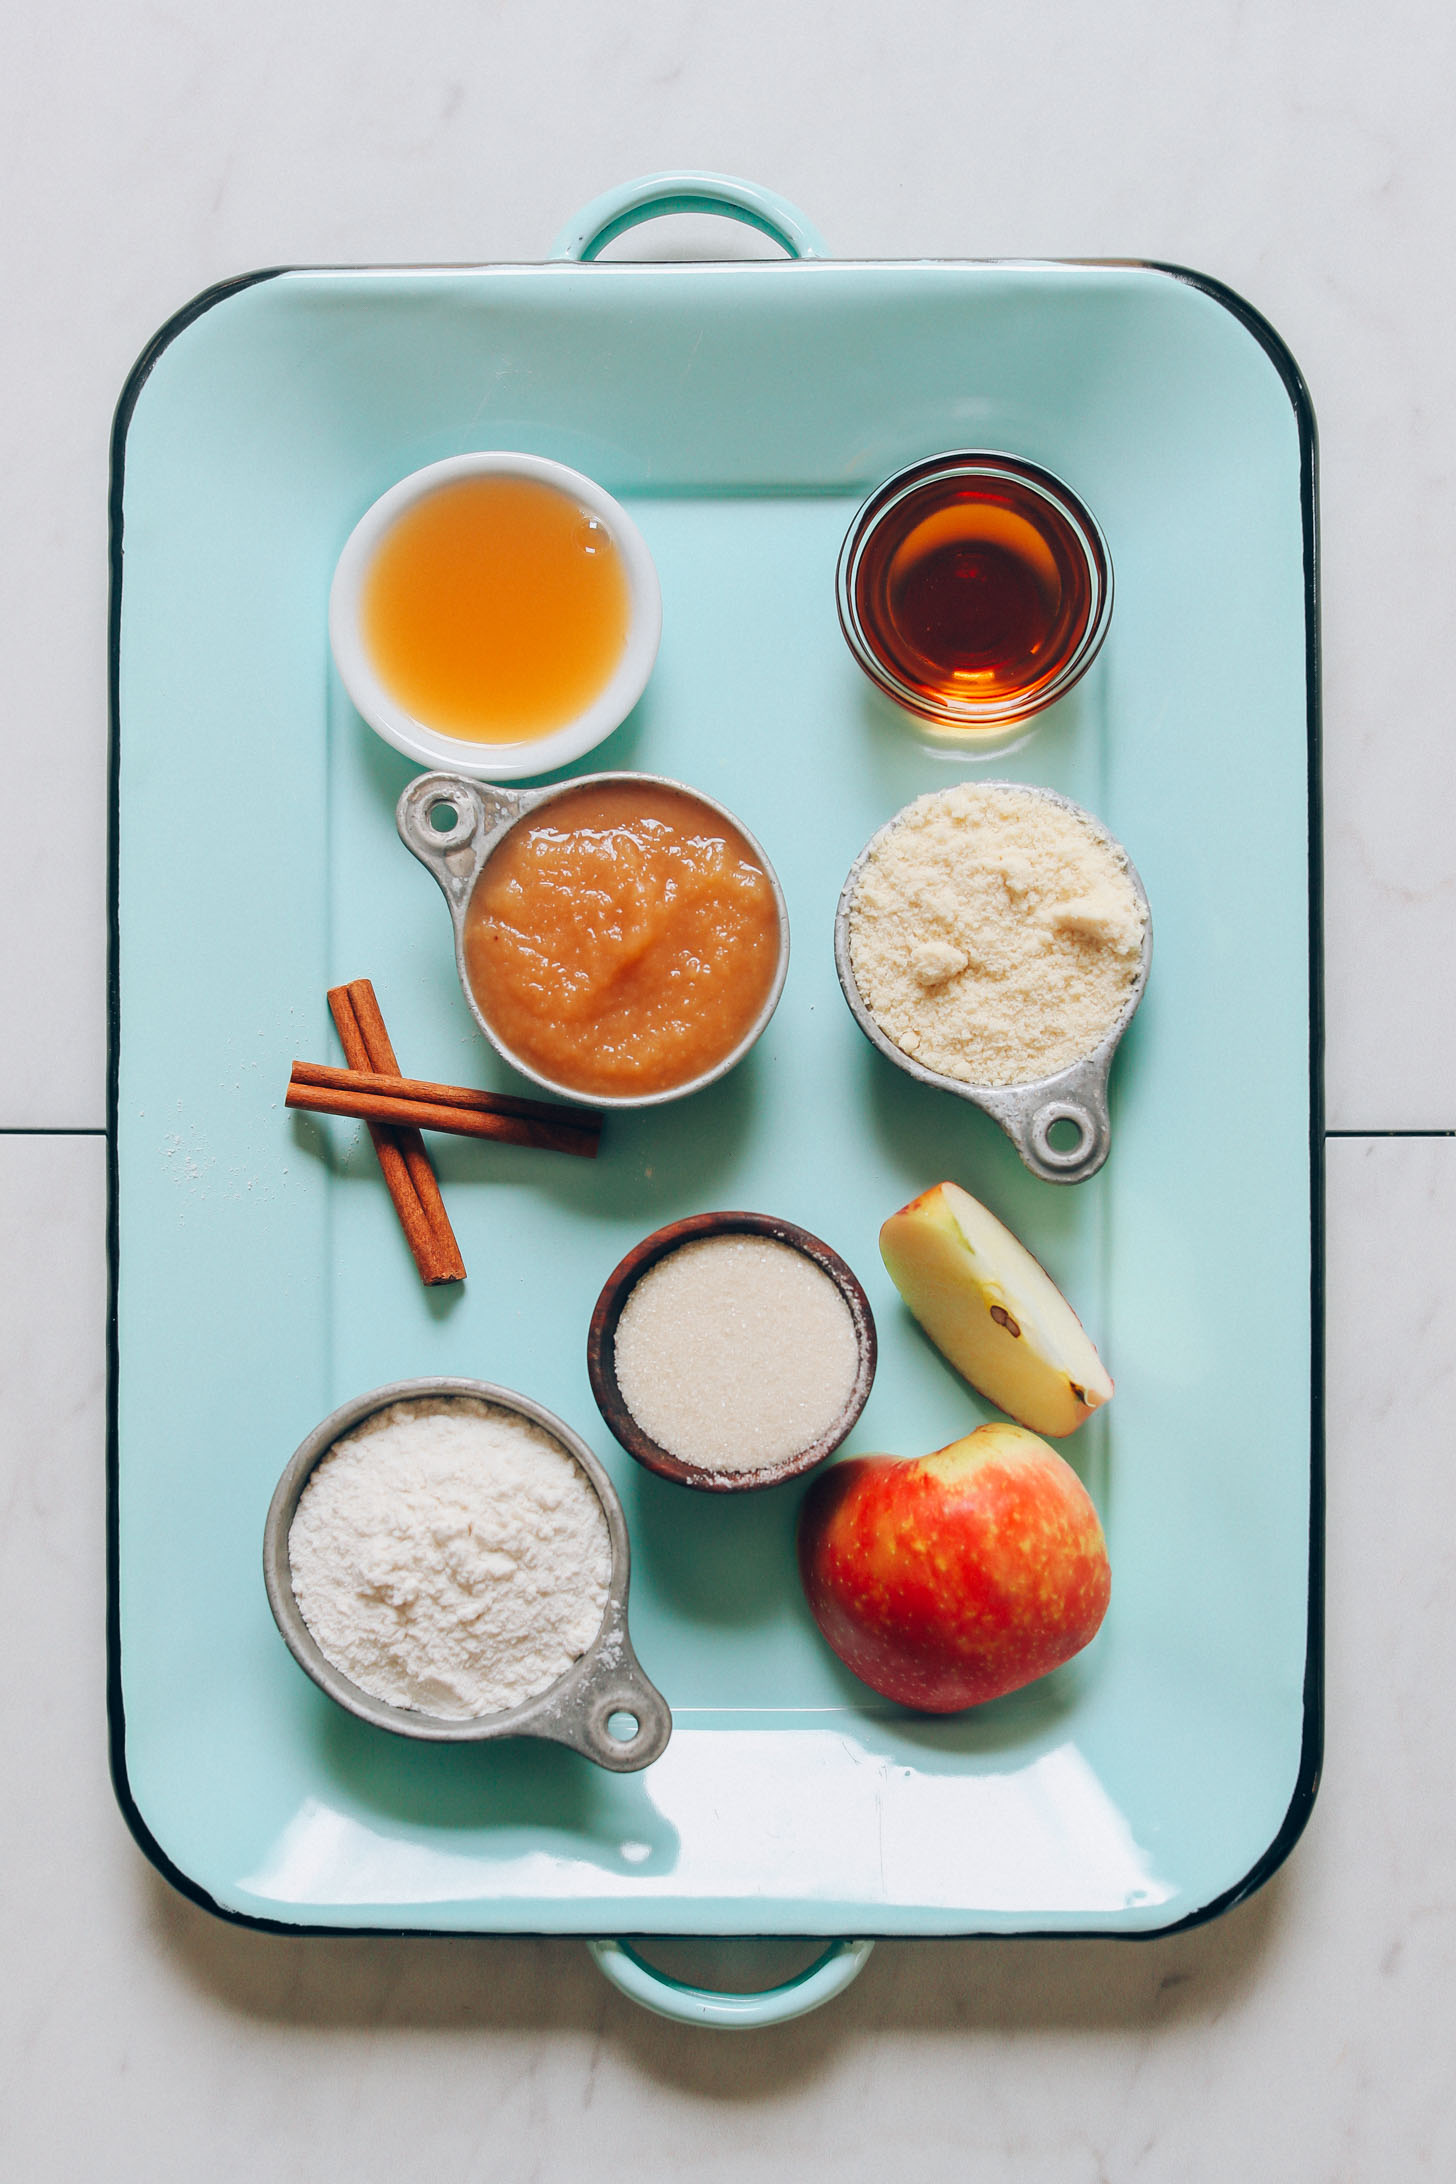 Tray with ingredients for making our gluten-free vegan Apple Cider Donuts recipe